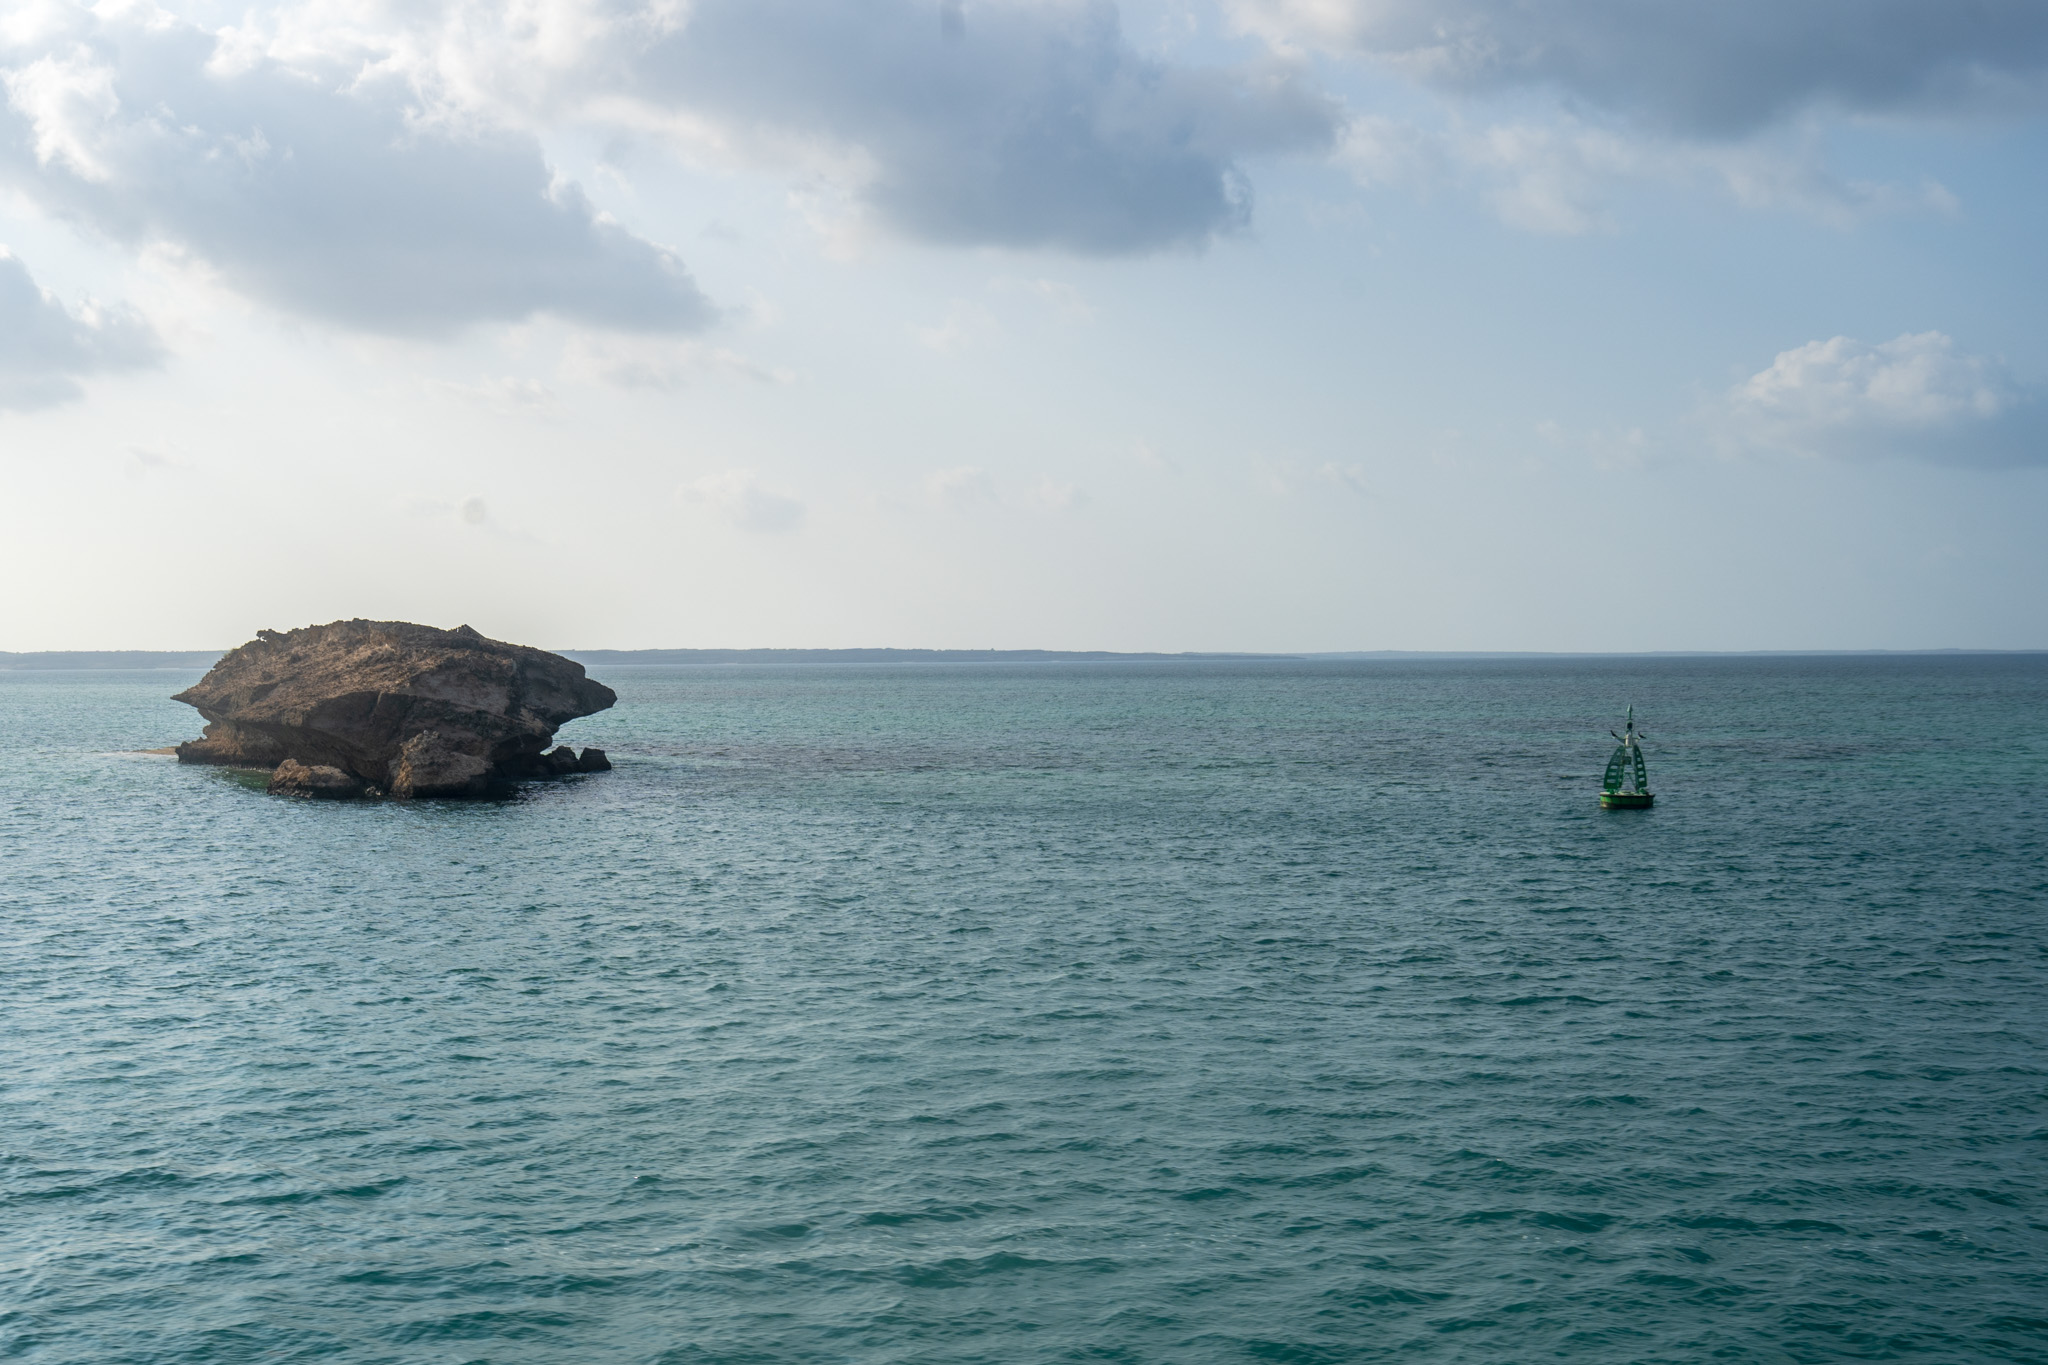 One of the smaller islands in the Farasan Archipelago